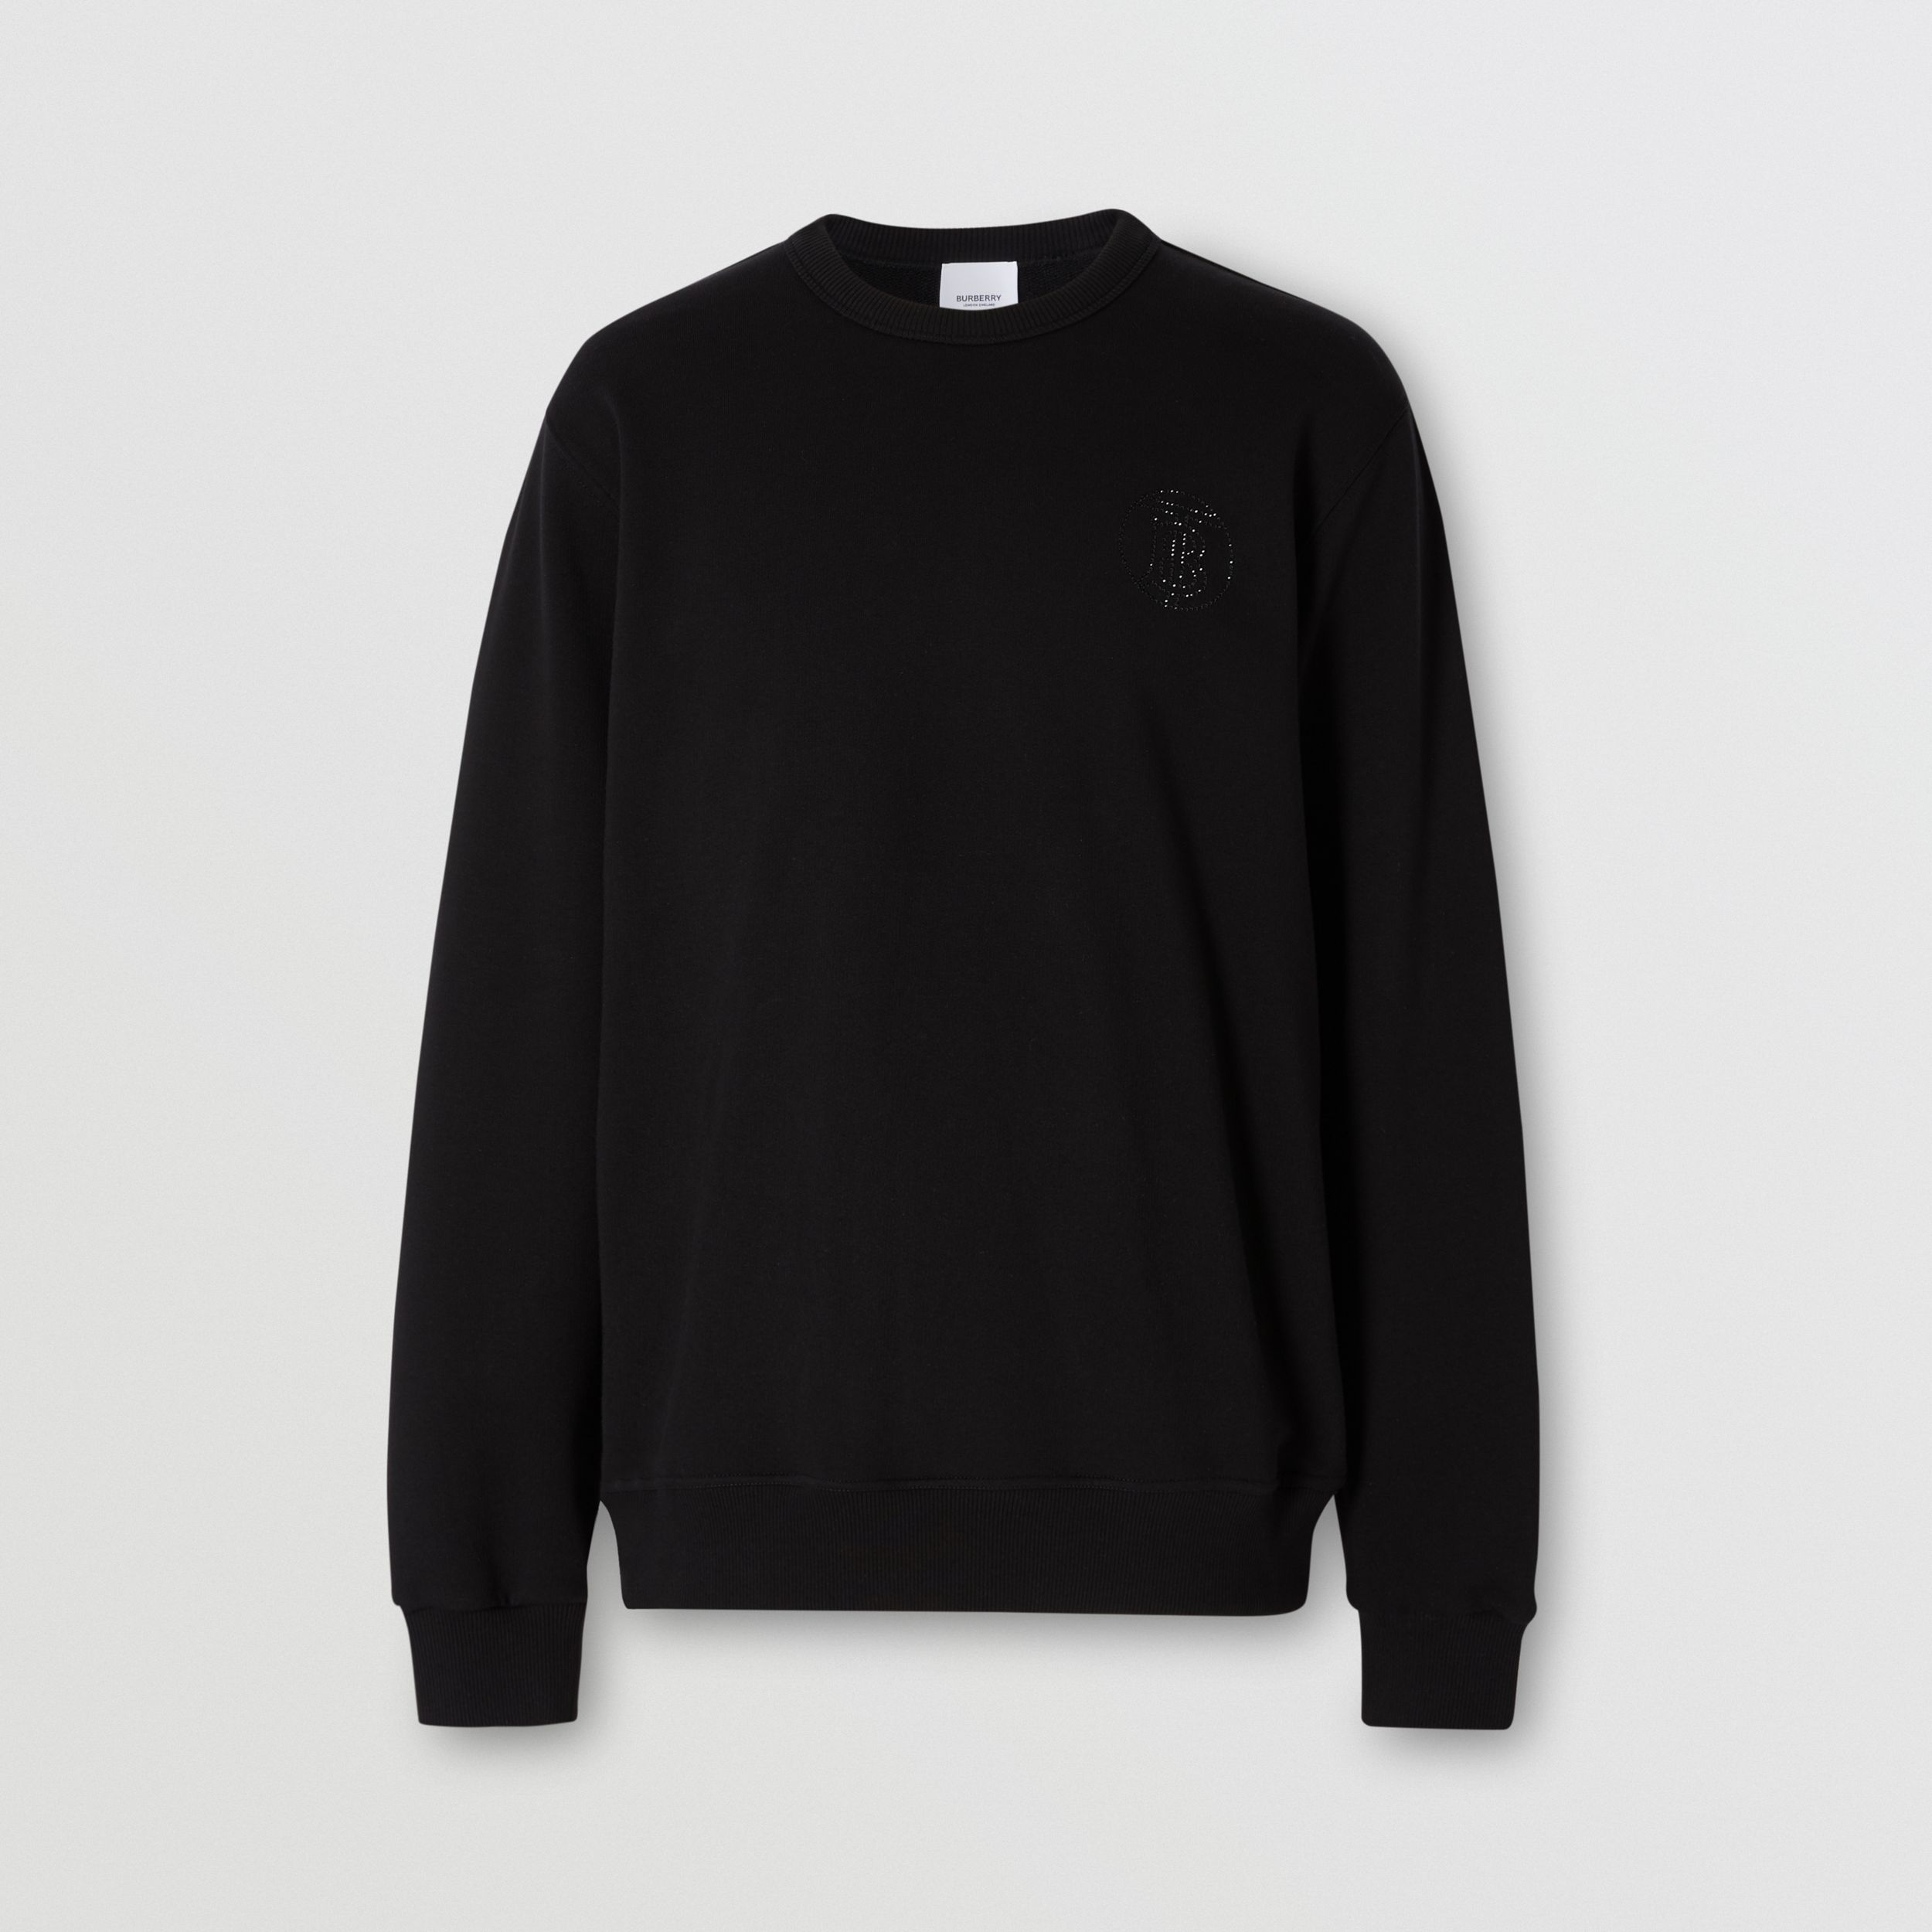 Crystal Monogram Motif Cotton Sweatshirt in Black - Men | Burberry - 4